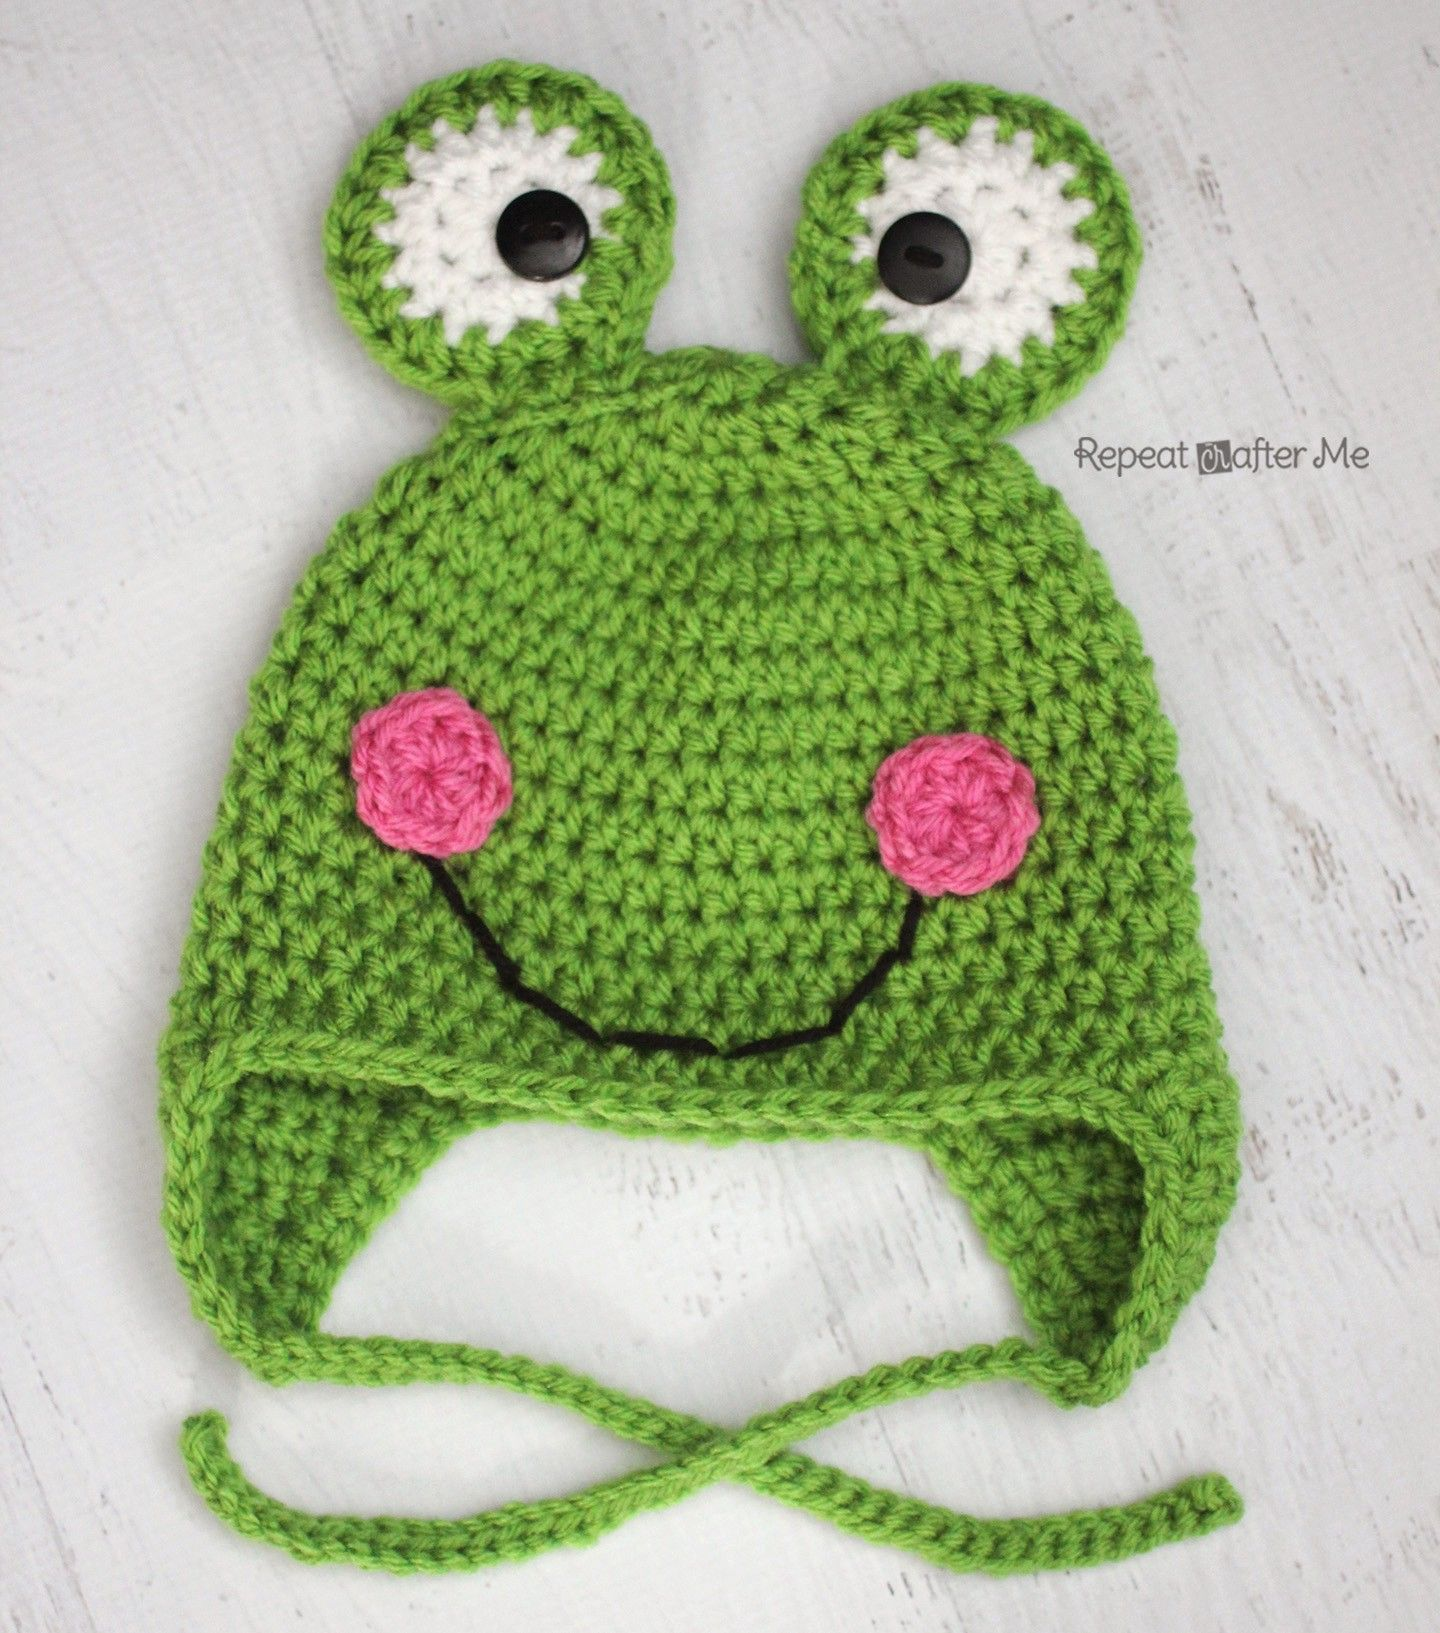 Crochet Frog Hat Pattern (Repeat Crafter Me) | Mütze kinder ...